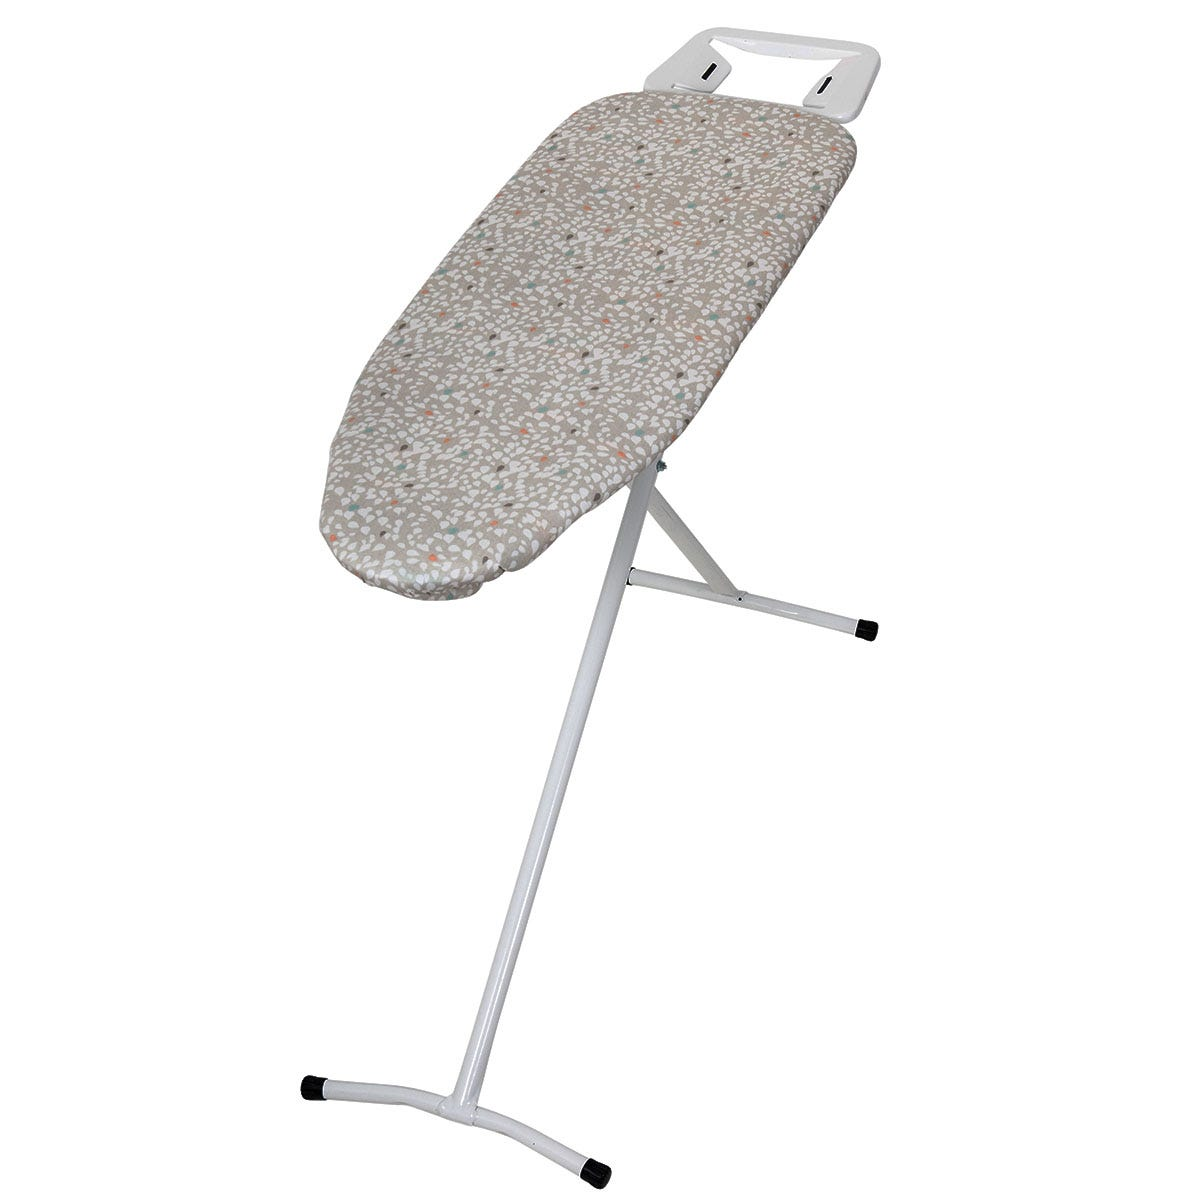 Image of Addis PerfectFit Medium Replacement Ironing Board Cover